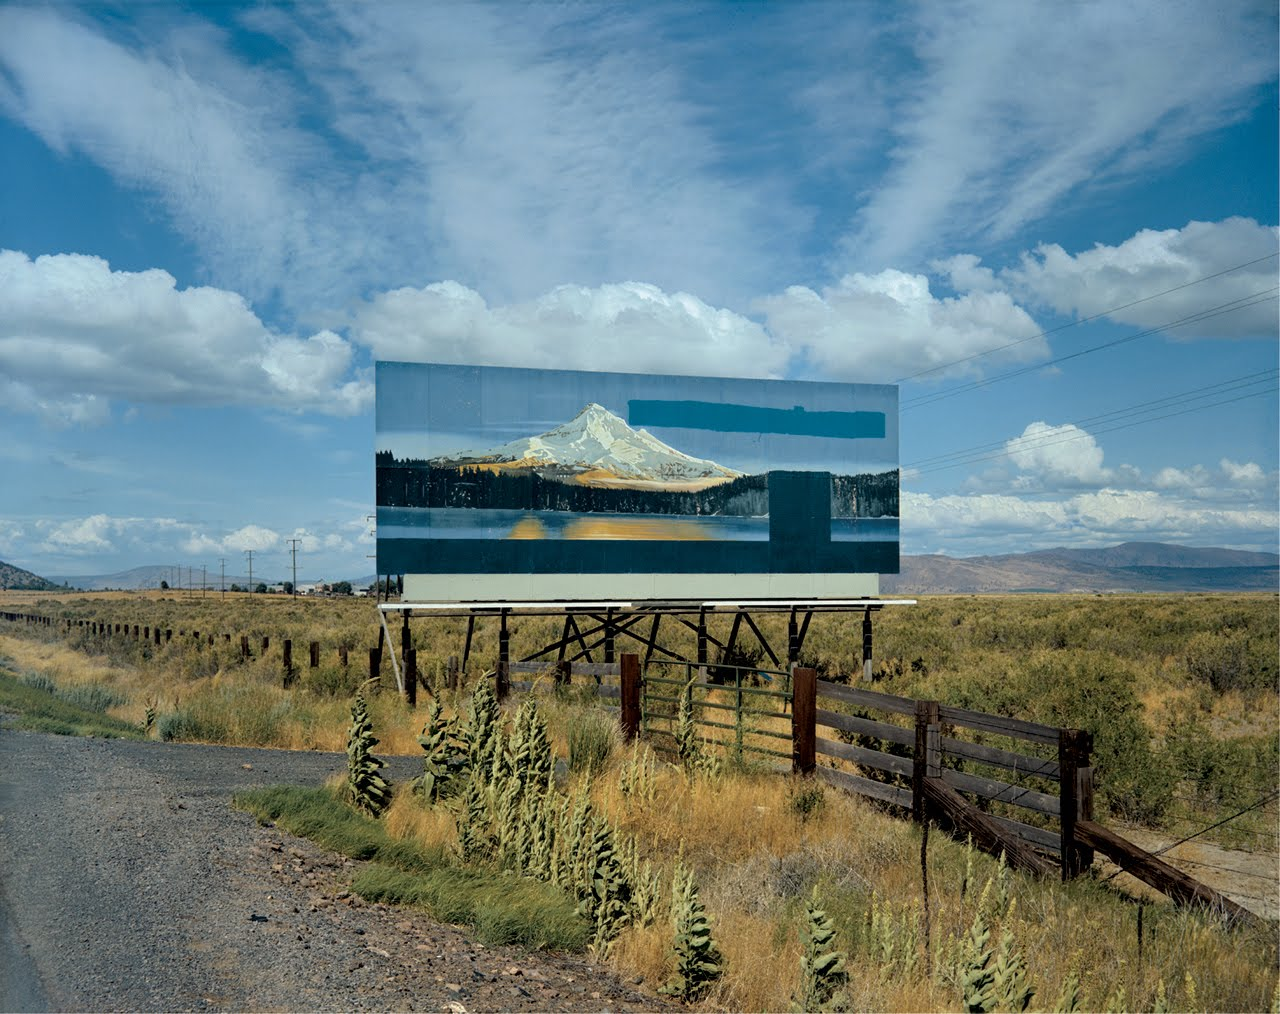 Fig 18. Stephen Shore, U.S. 97, South of Klamath Falls, Oregon, 1973. C-Type Print